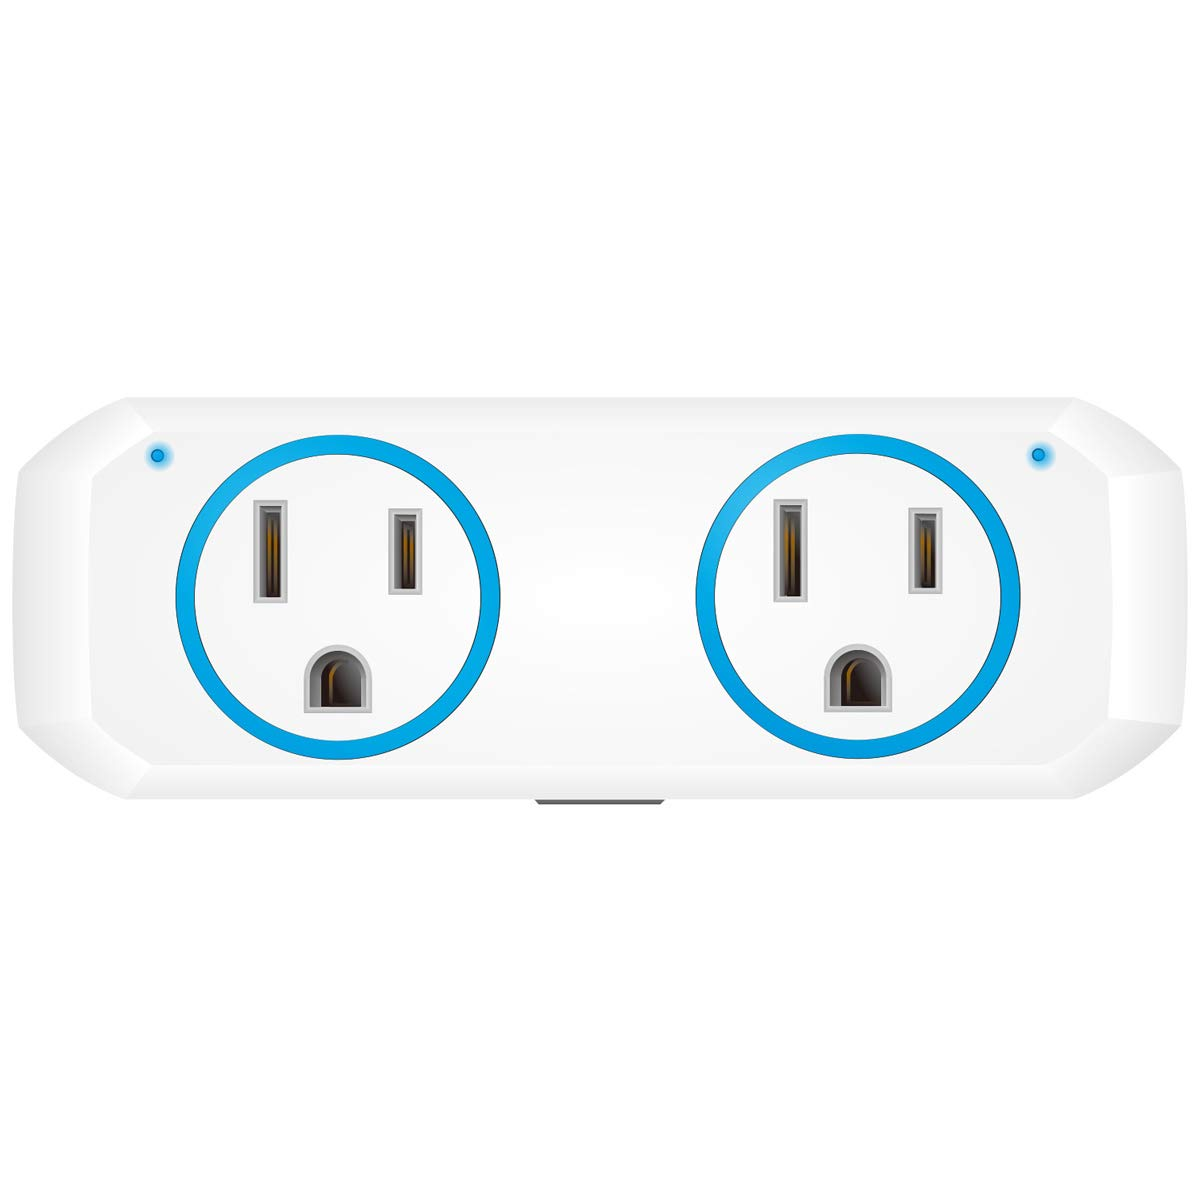 Oukitel Smart Wi-Fi Plug, Alexa Echo Plug,2 in 1 Smart Plug Mini Outlet With Timer Wi-Fi Smart Socket Switch Voice and App Controlled,Compatible with Alexa Echo,Google Home and IFTTT (1 Pack, Blue)